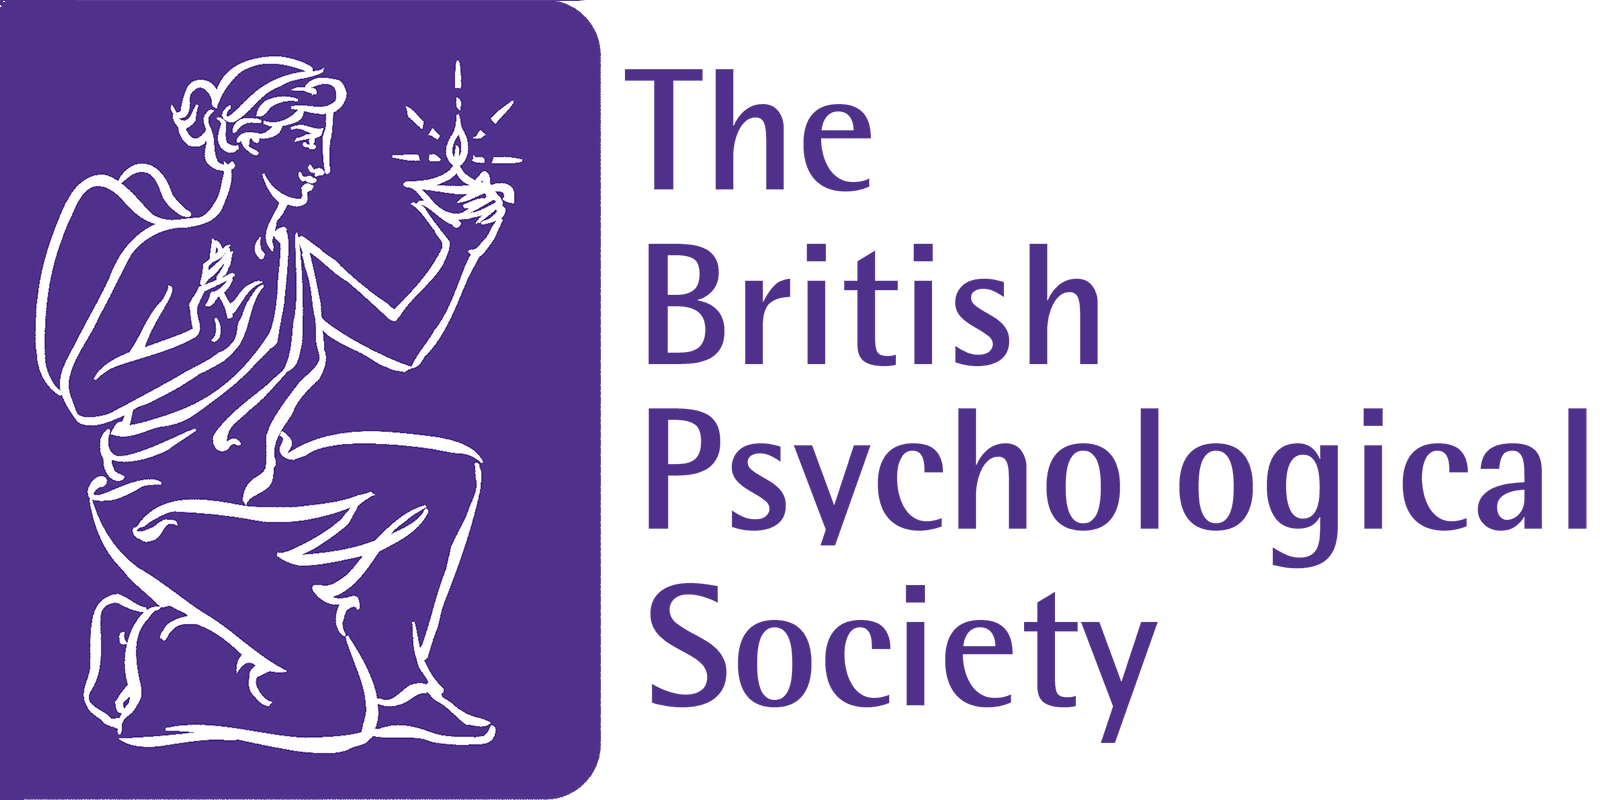 British Psychological Society Archives - Research Blog